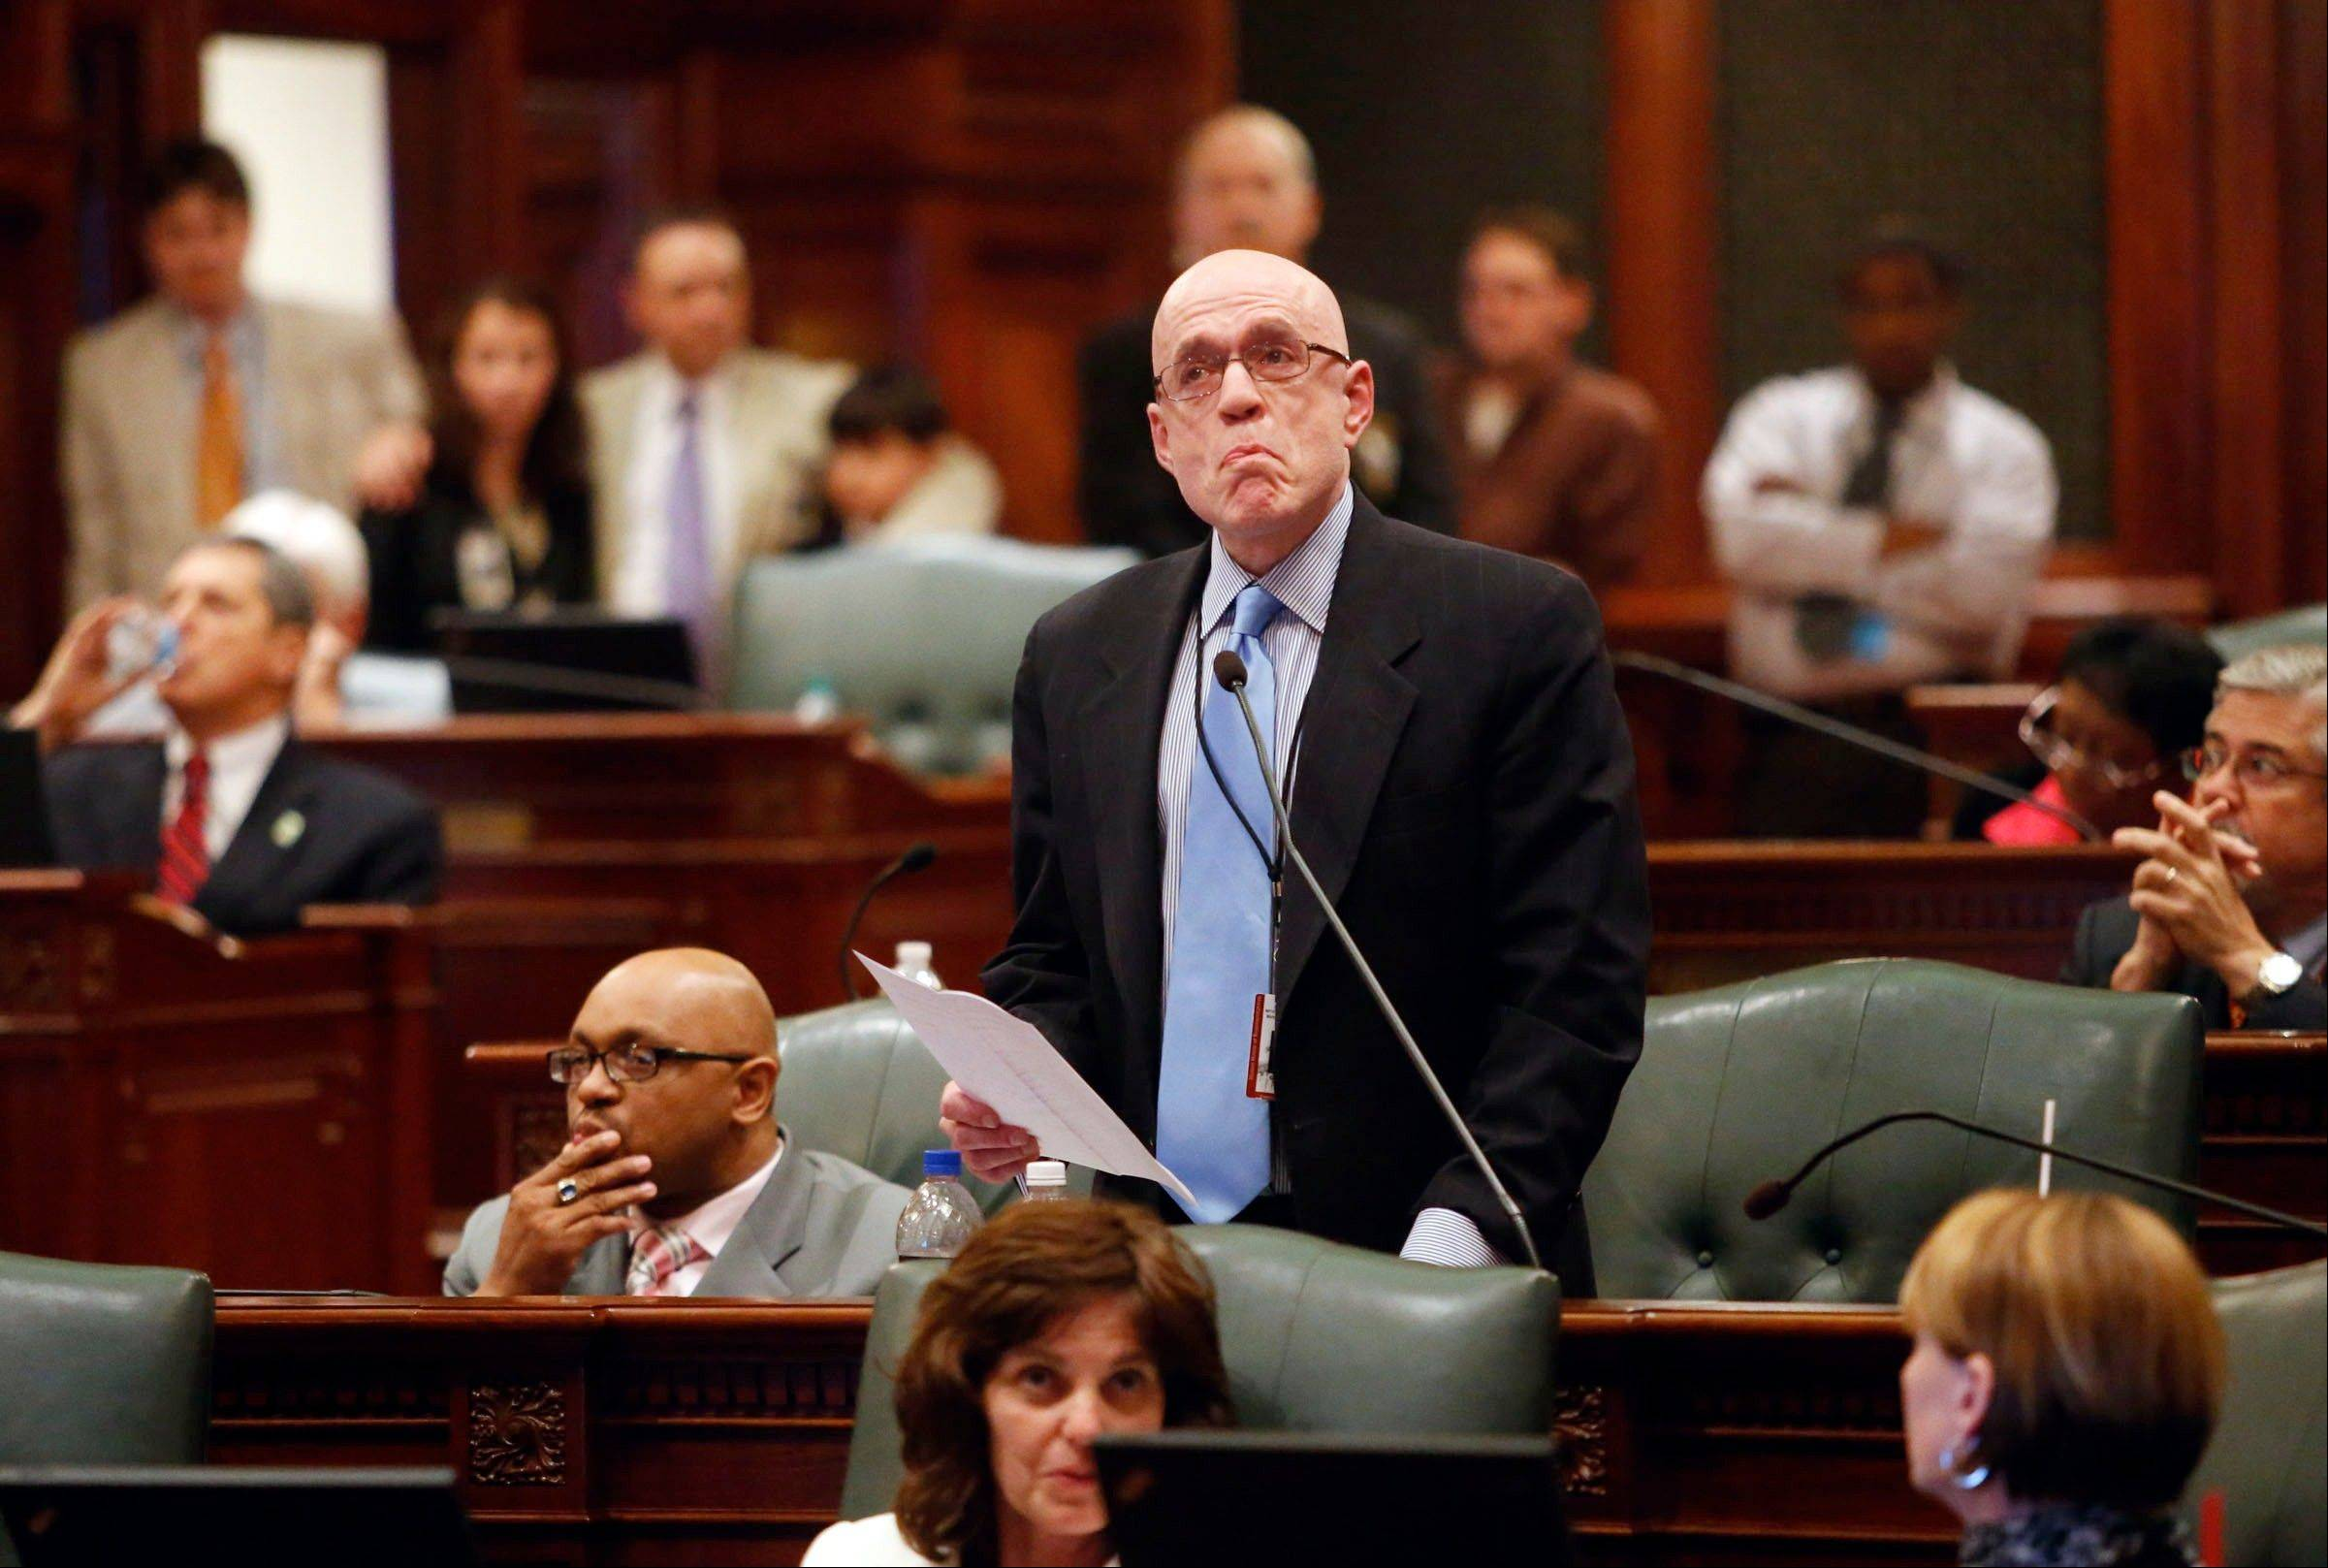 State Rep. Greg Harris, a Chicago Democrat, pauses to regain his composure as the gallery erupts in protest Friday after he announced he wouldn't call the gay marriage bill on the House floor.